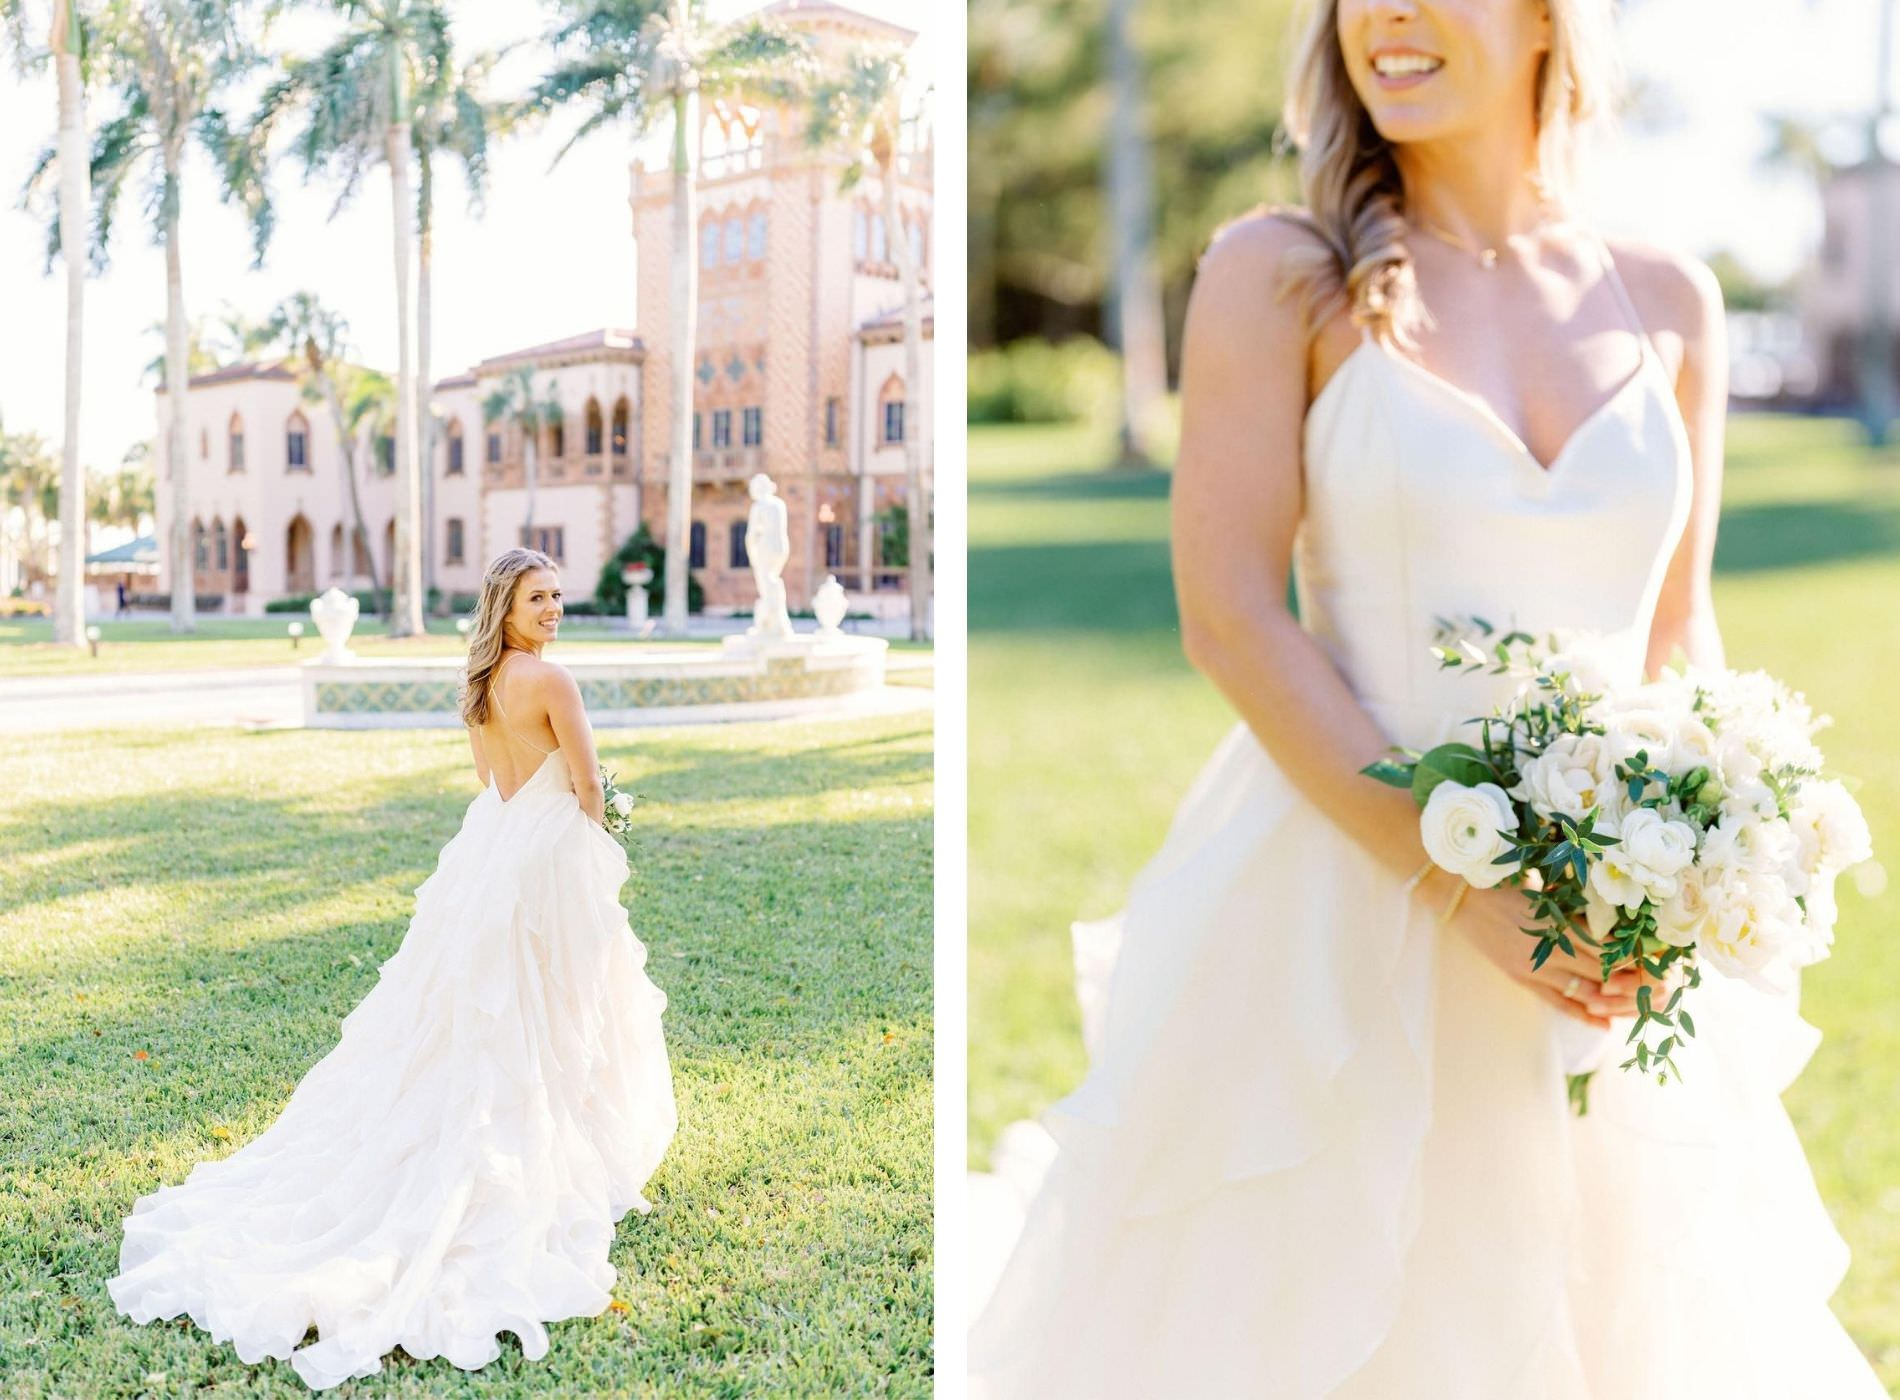 Romantic, Modern Florida Bride Holding White and Ivory Floral Bouquet with Greenery Wearing Tiered Wedding Dress In Courtyard in Ringling Mansion Belvedere Tower | Sarasota Wedding Planner NK Weddings